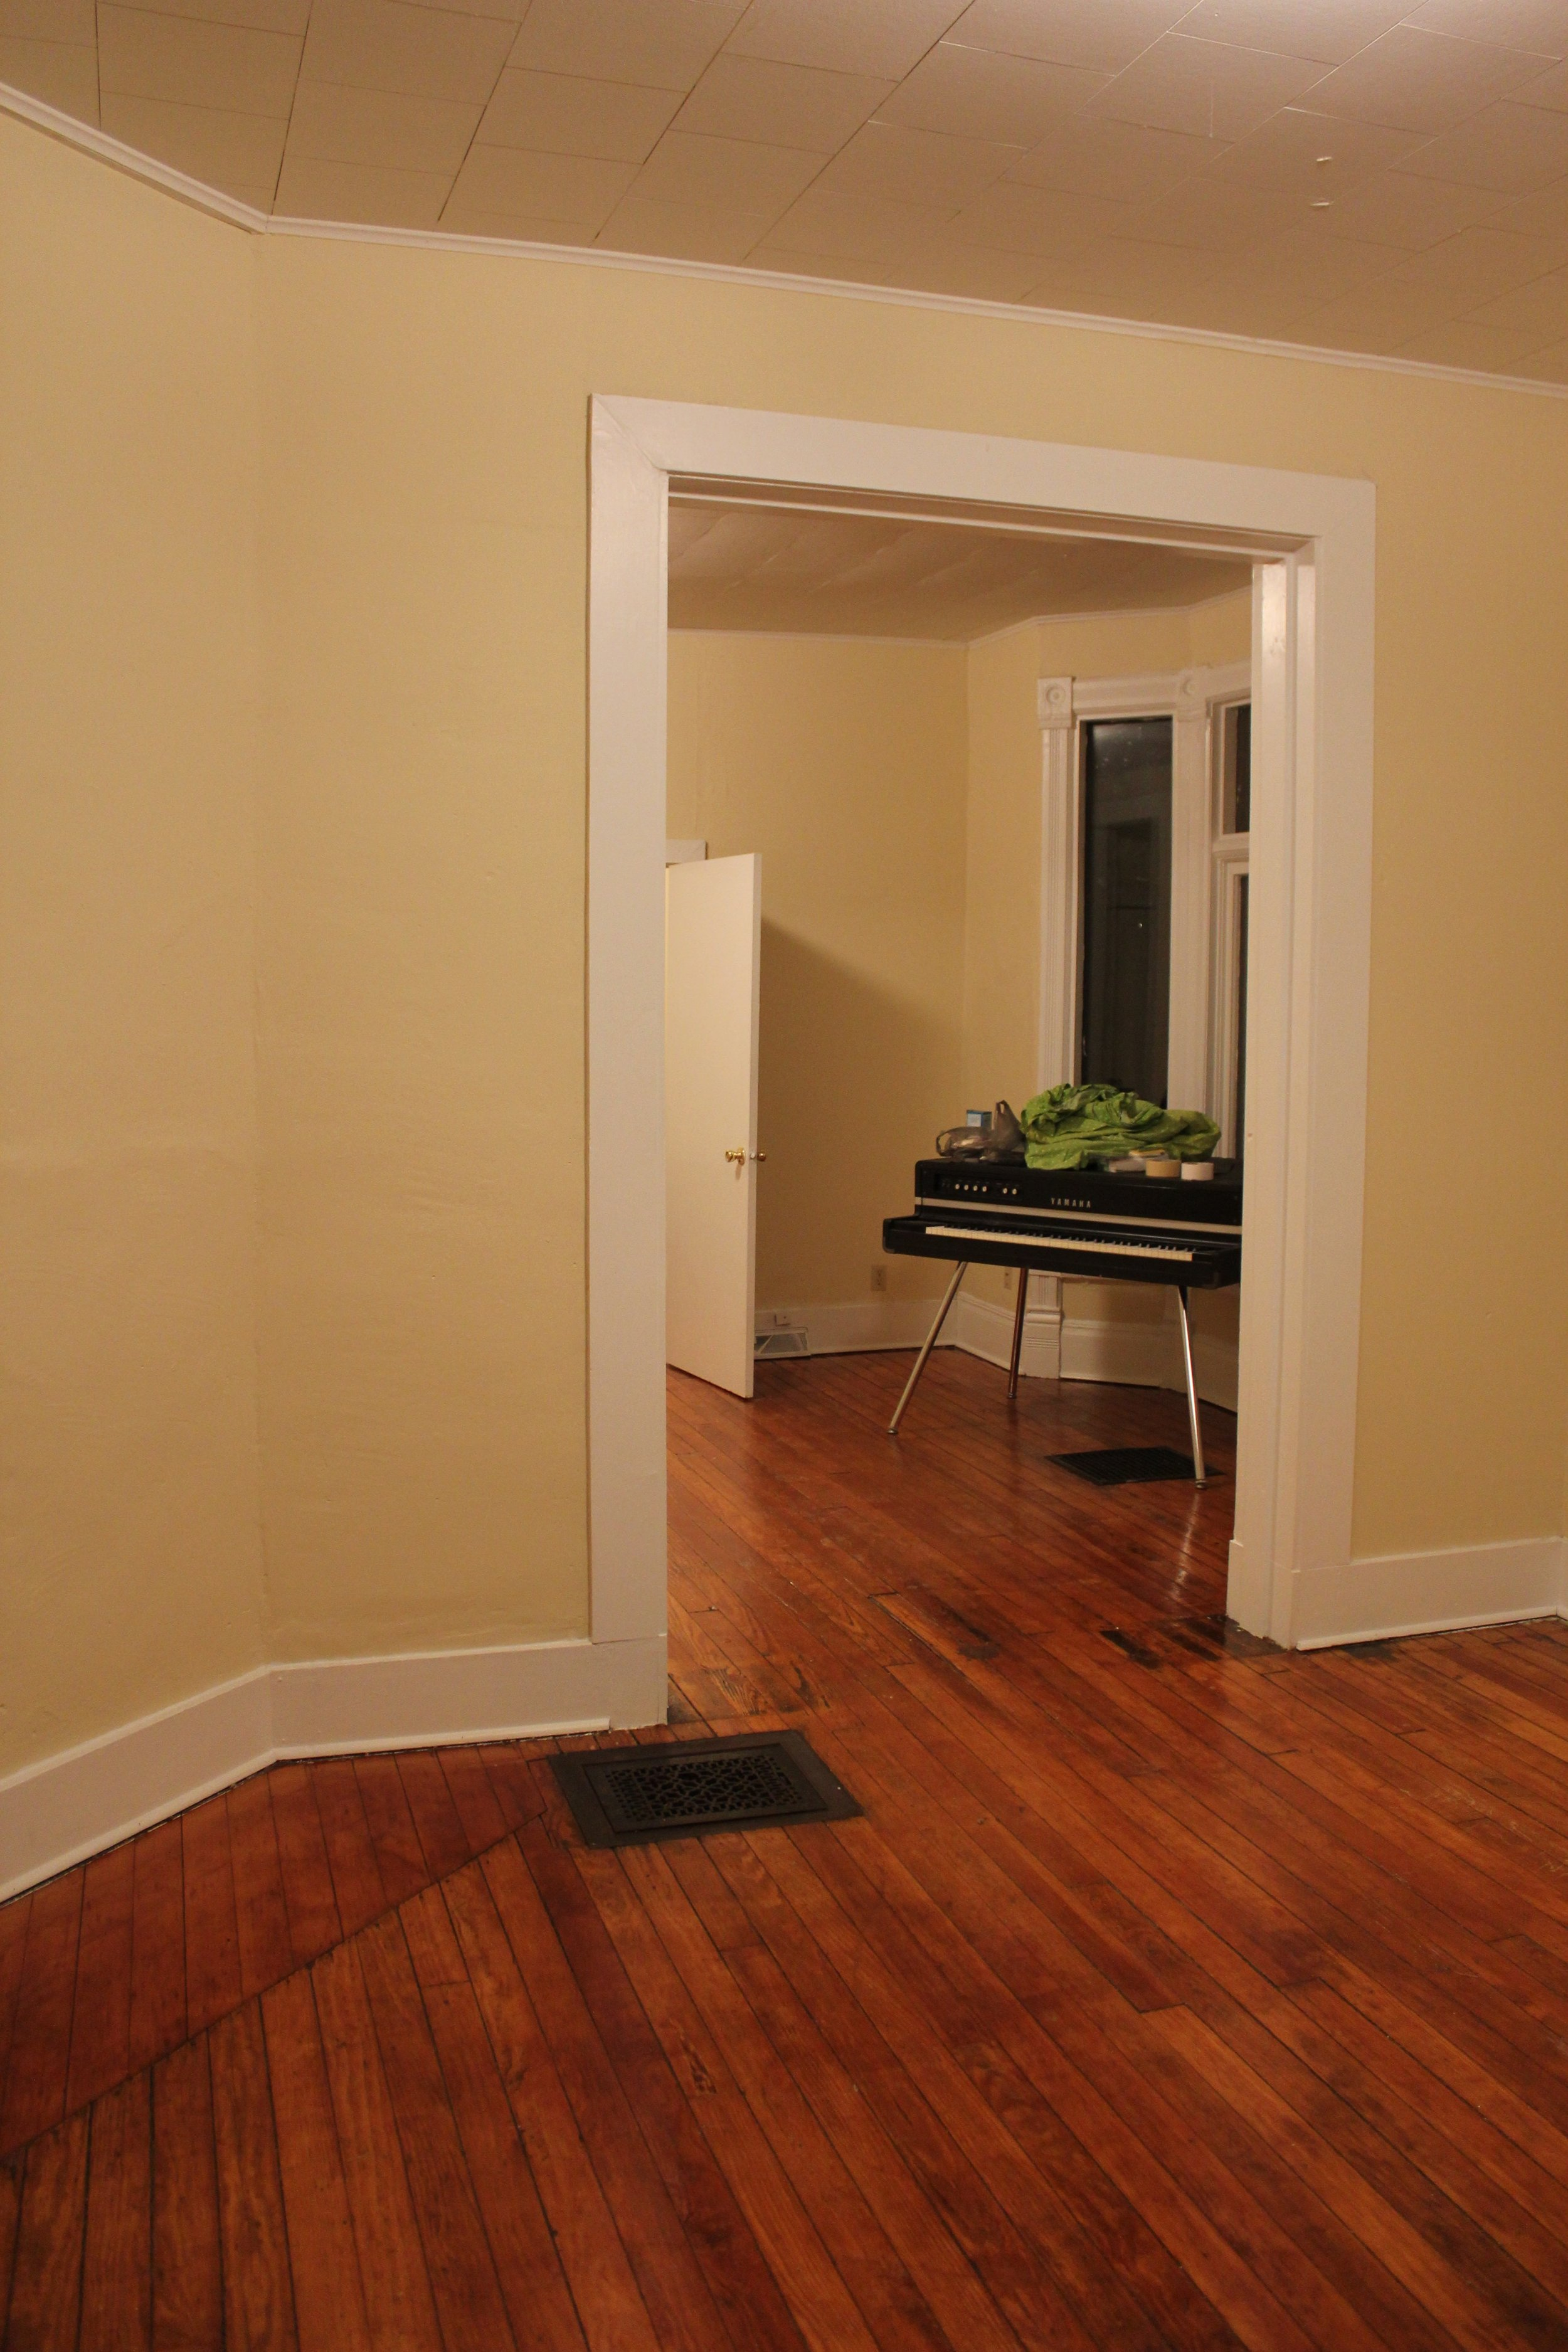 Move-in PIctures - 15.jpg